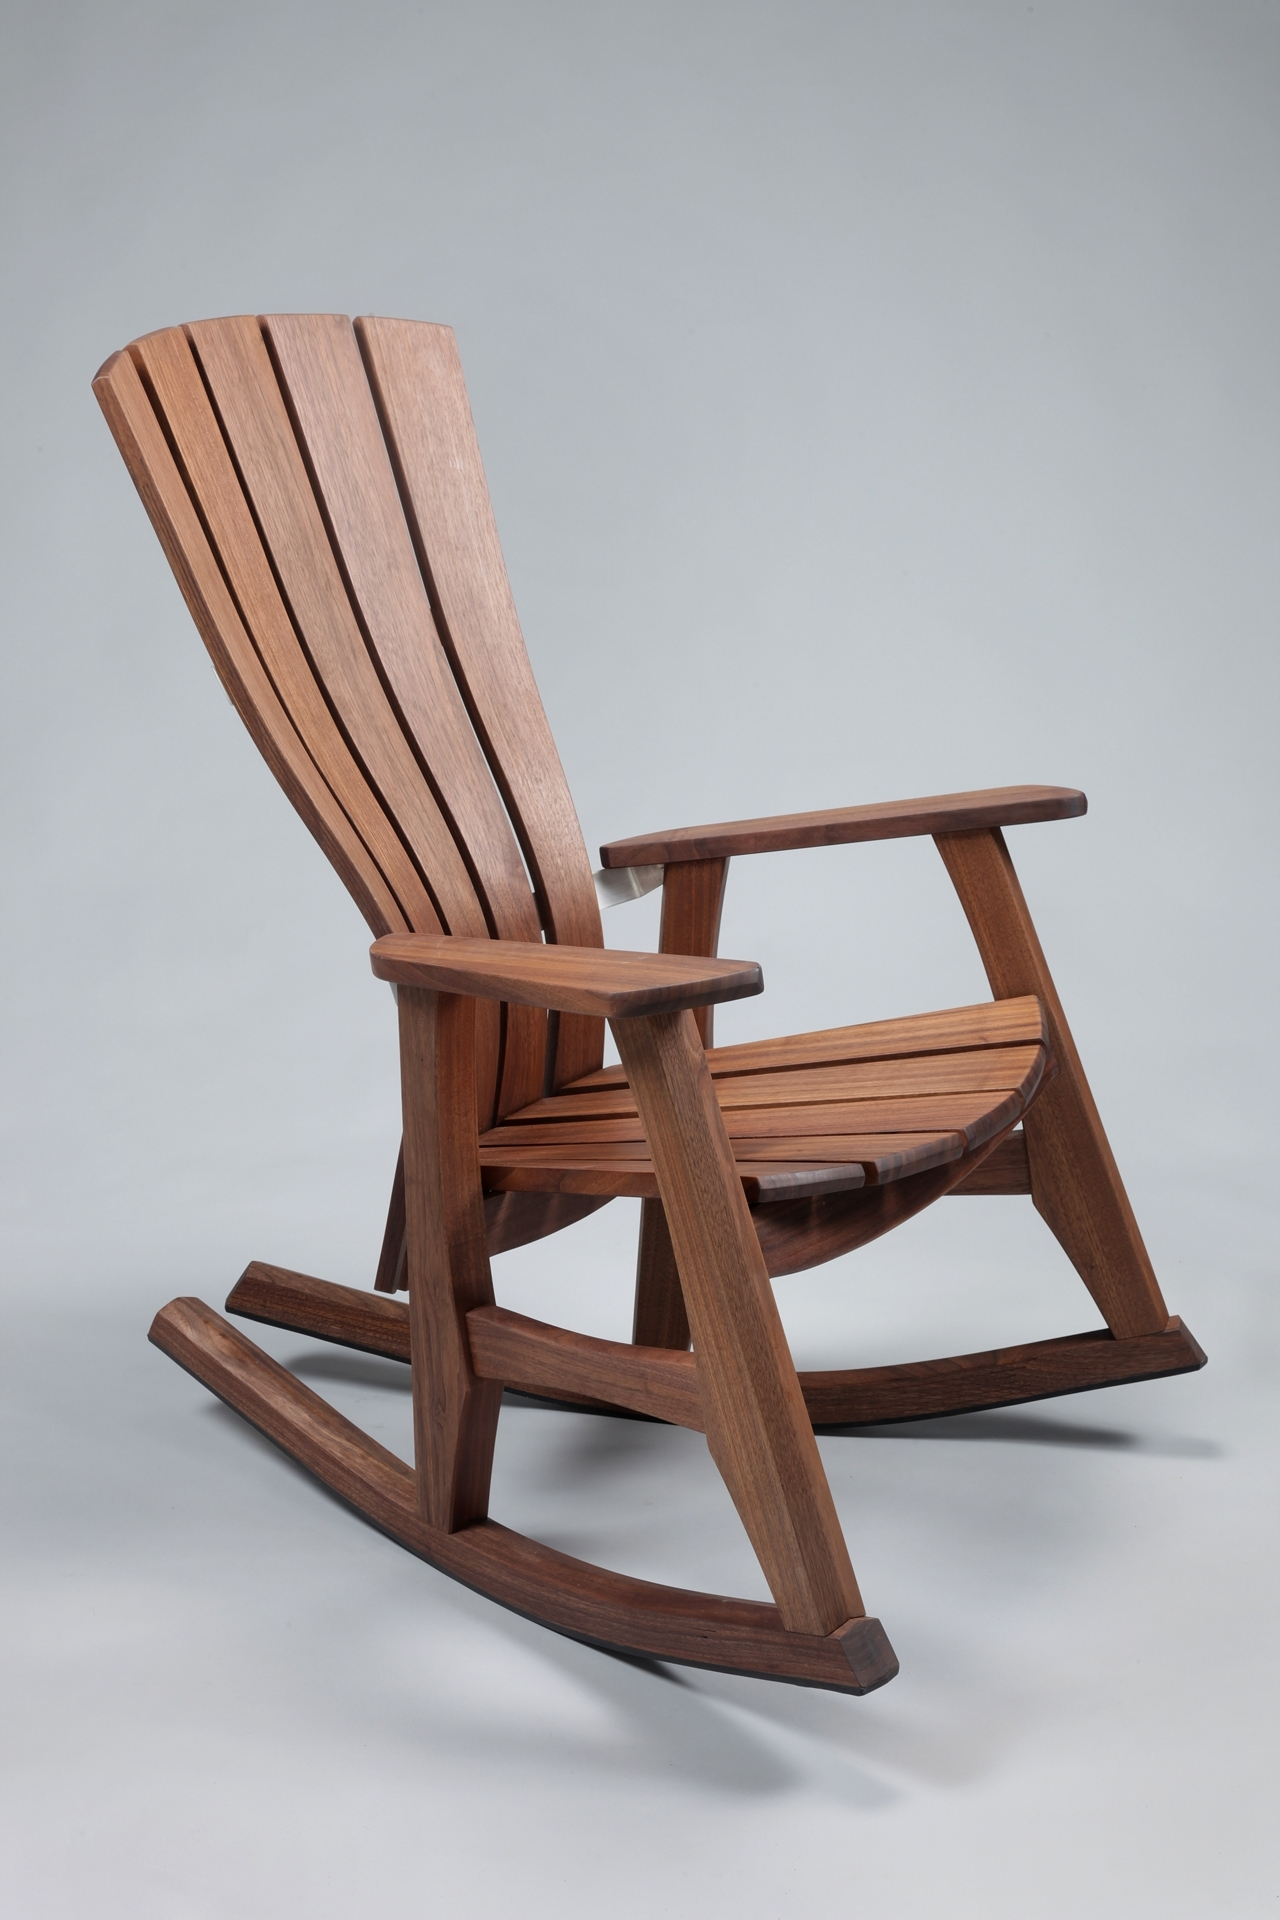 Vintage Outdoor Rocking Chairs In Well Liked Pleasure Outdoor Wooden Rocking Chairs (Gallery 15 of 20)